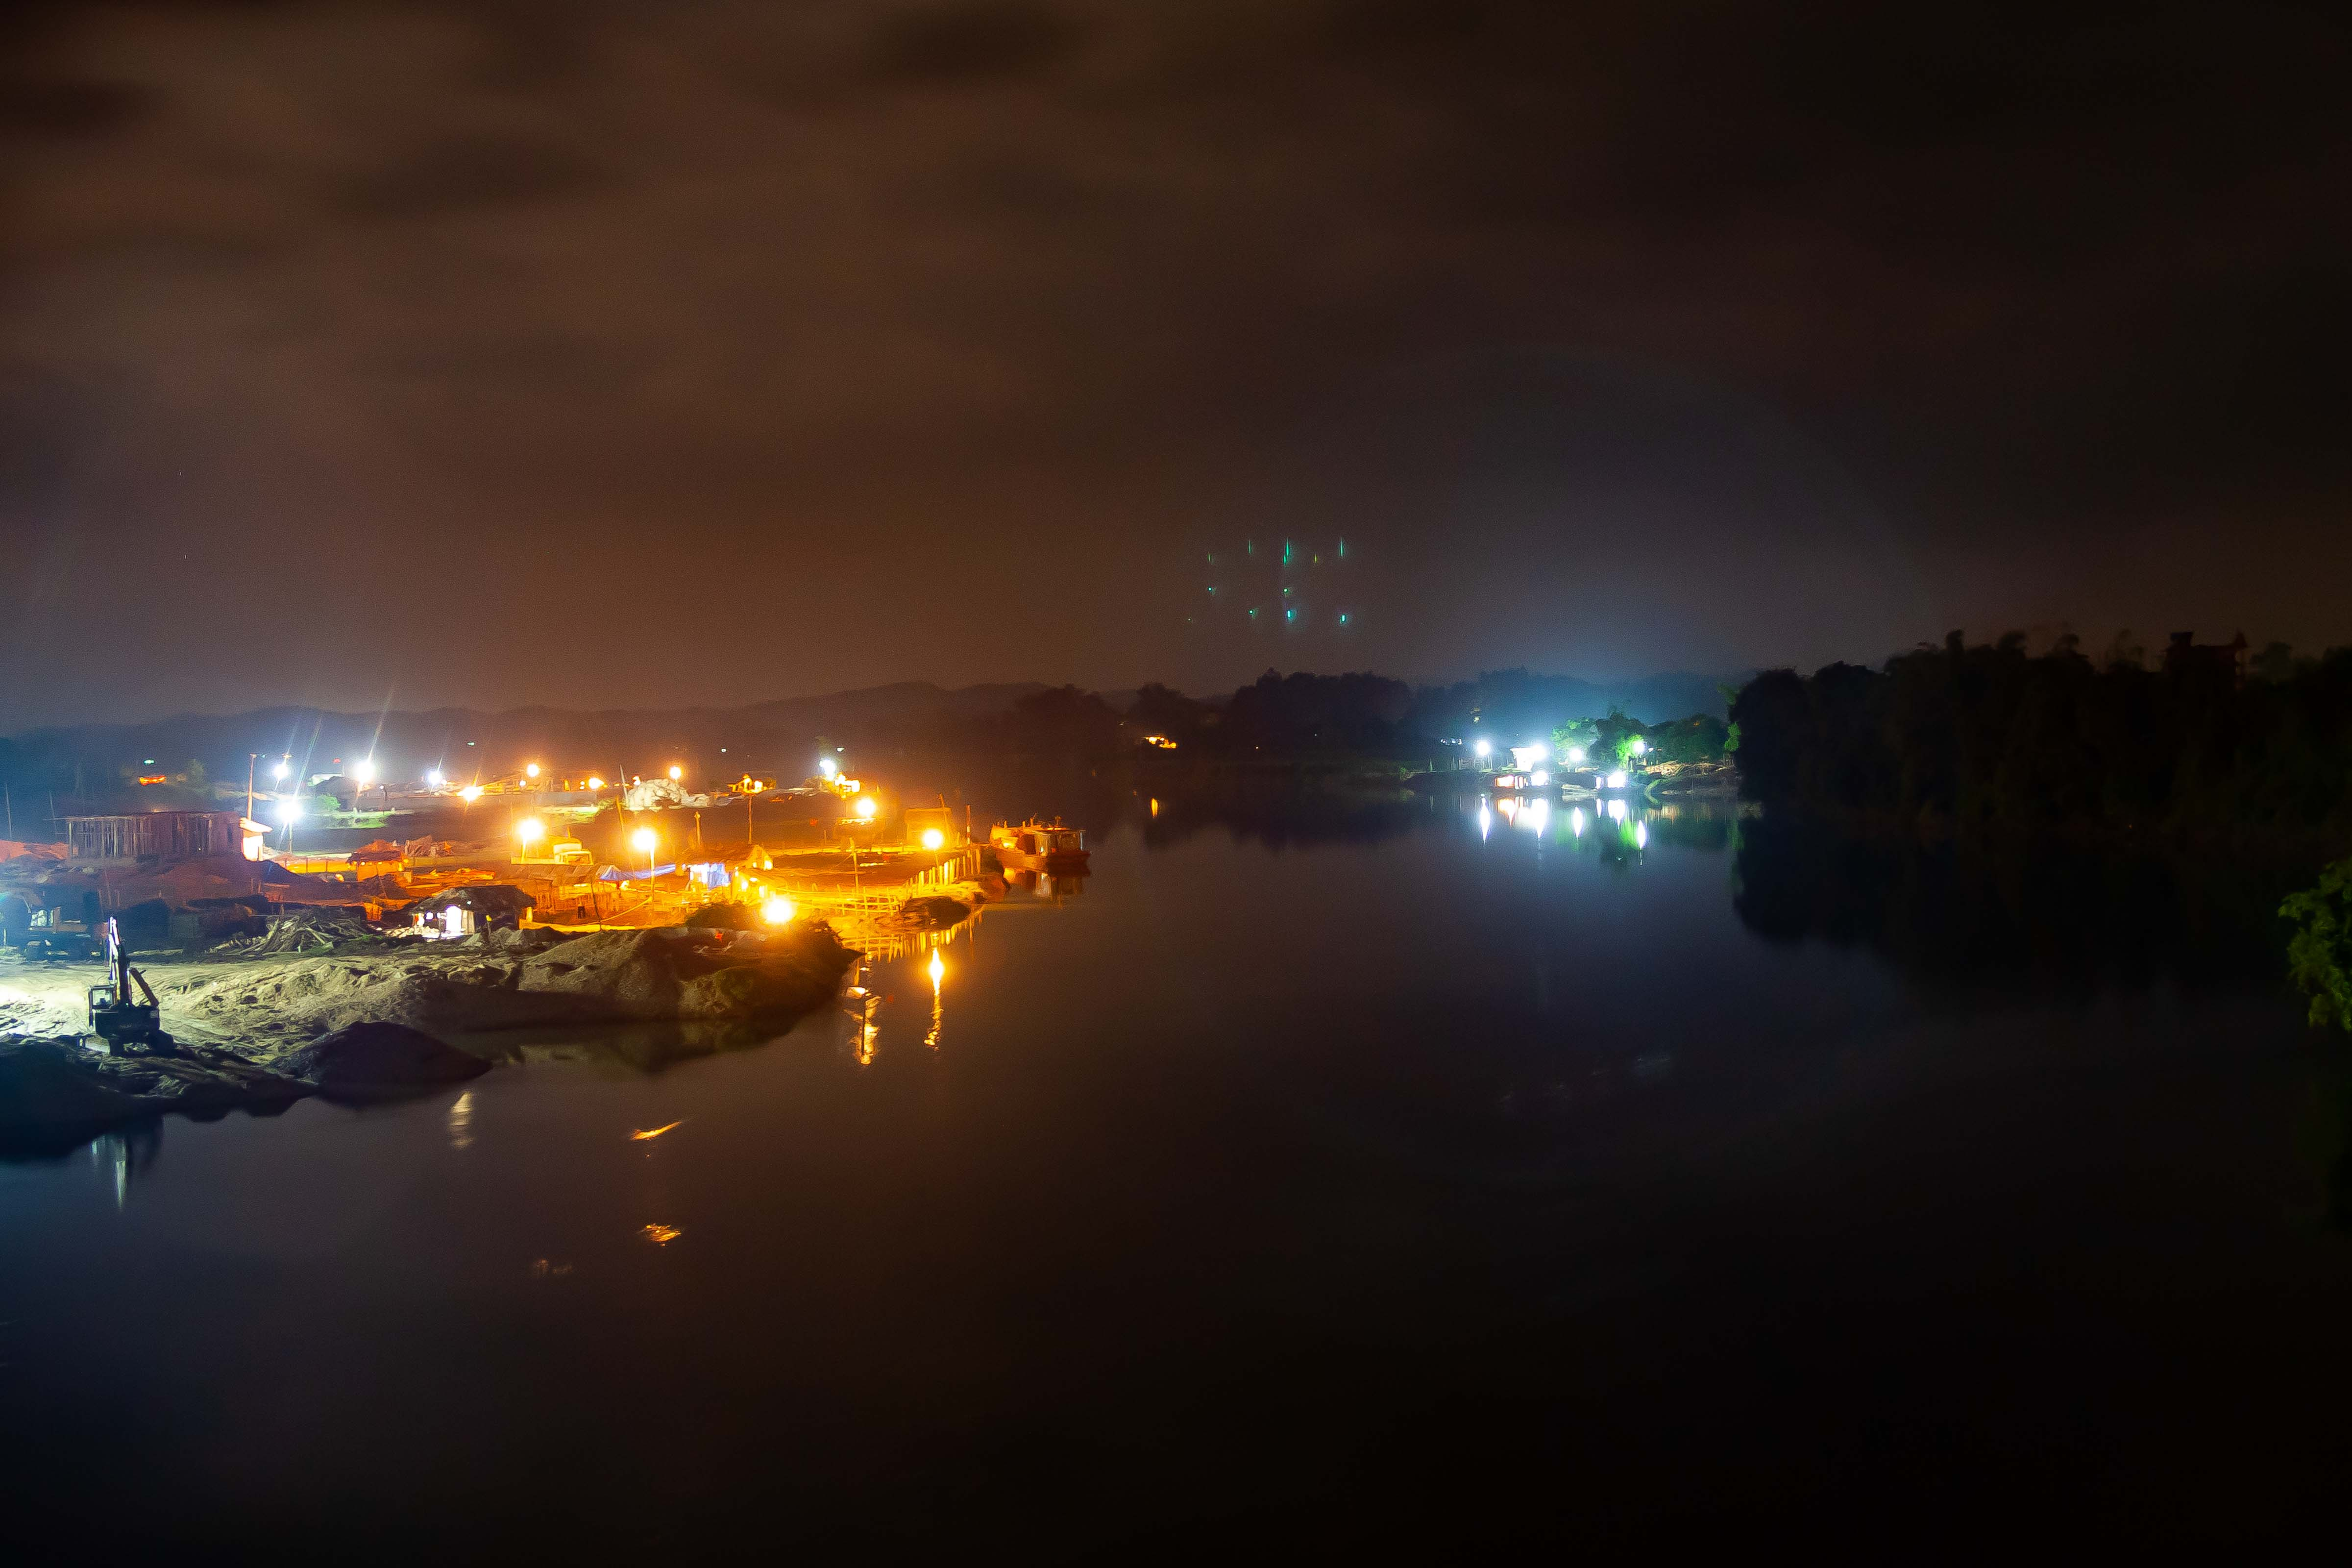 Vietnam, Phu Tho Prov, Night River, 2008, IMG 8767